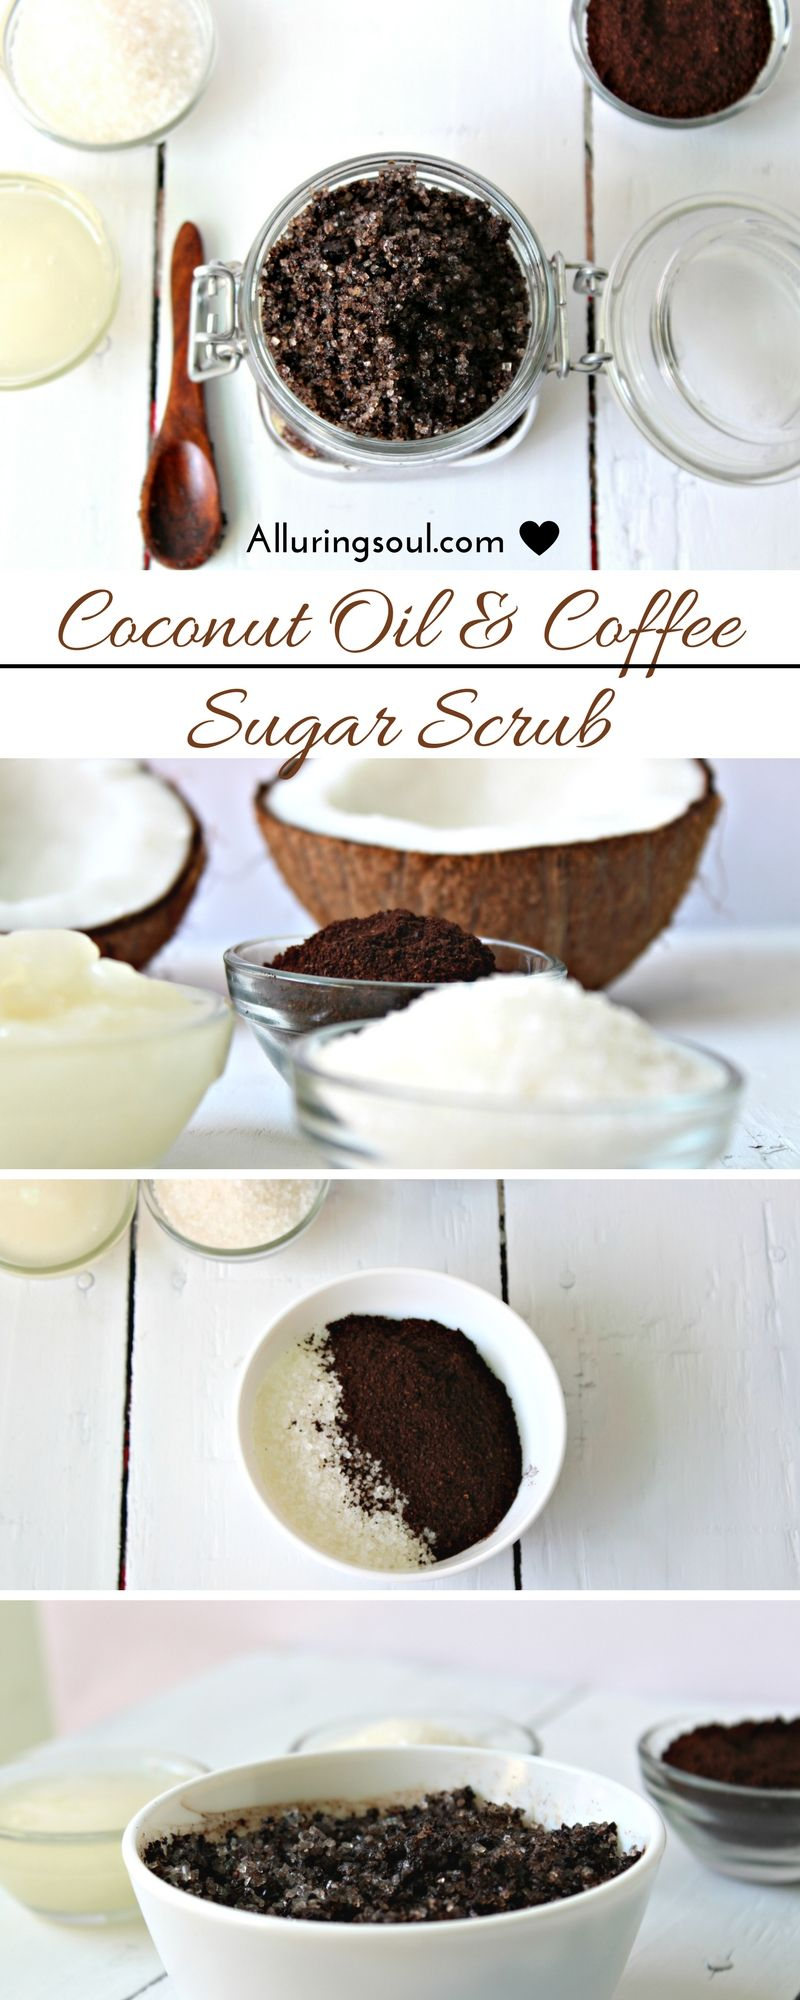 524f31c17fe Provide nourishment to your skin with this coffee scrub. It fights free  radicals causing wrinkles, exfoliate dead cell and dark spots, brightens,  ...